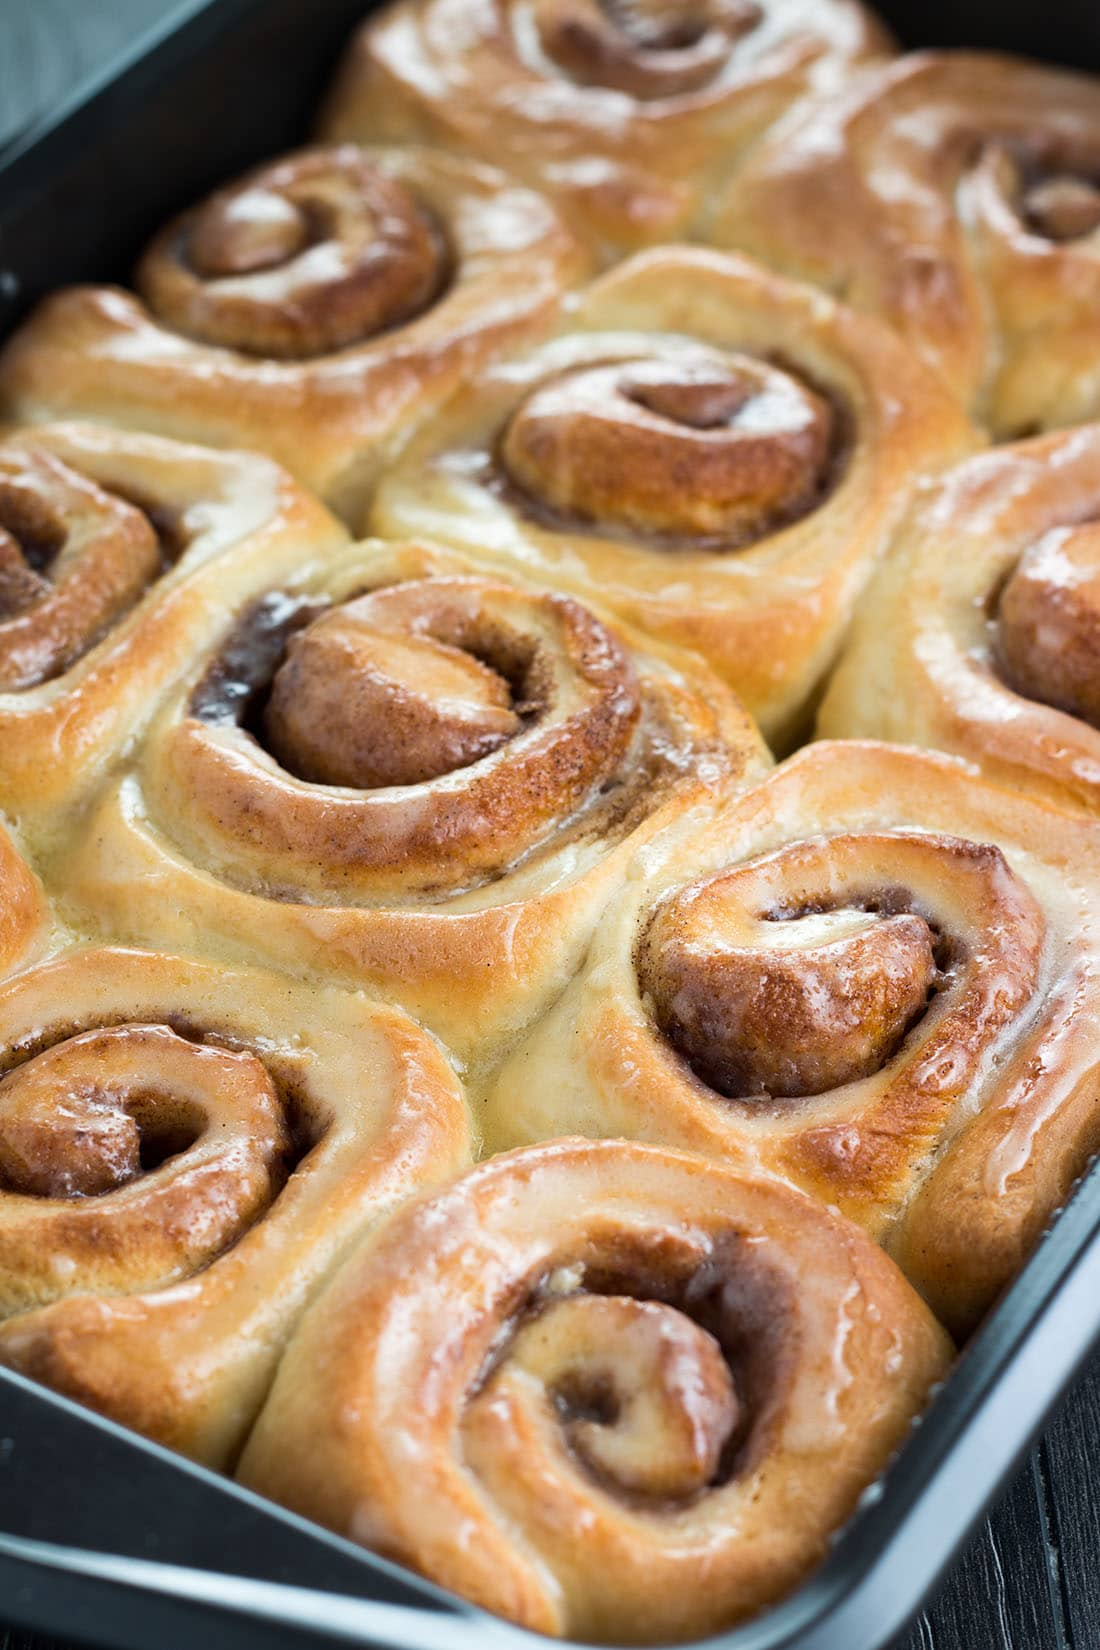 Freshly baked golden brown vanilla bean cinnamon buns in the pan covered with glistening glaze